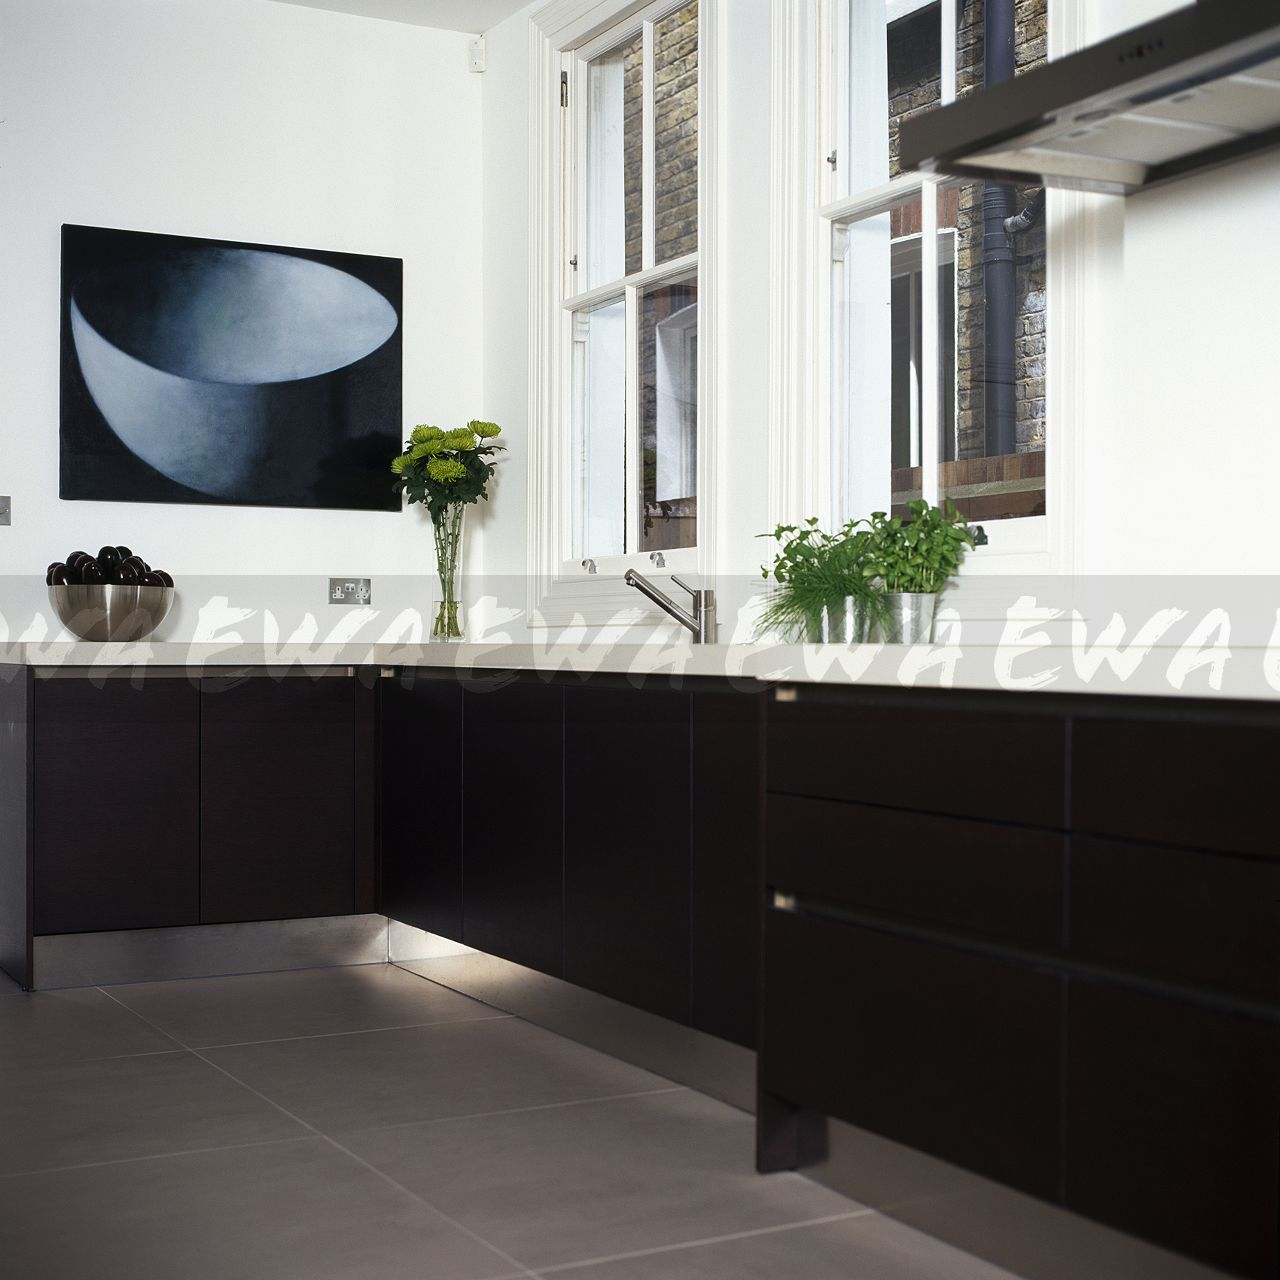 Kitchen Kickboards Black